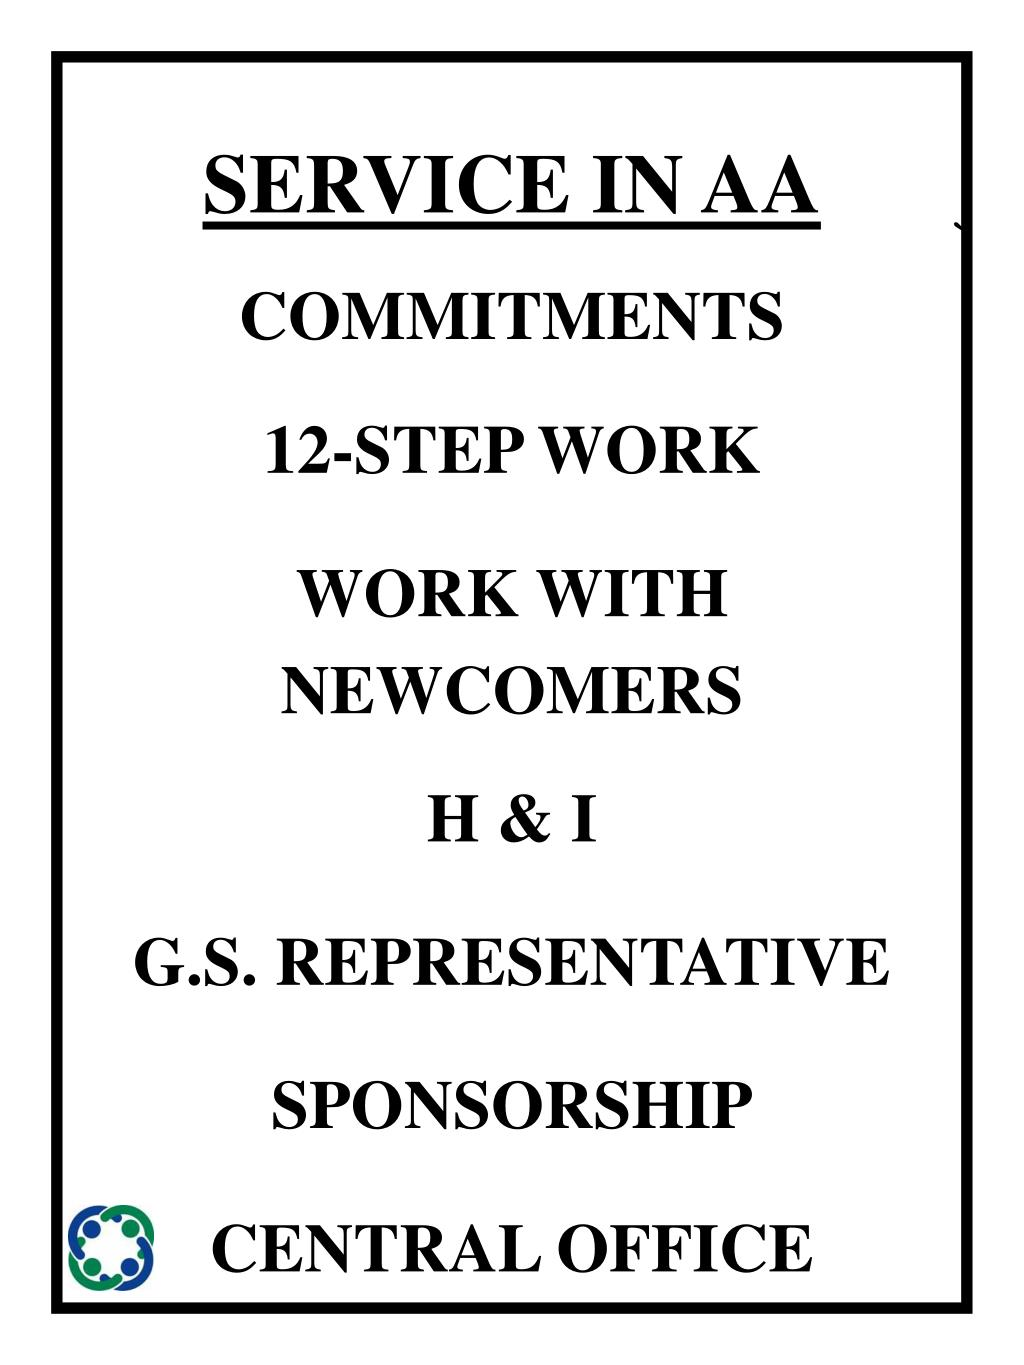 SERVICE IN AA